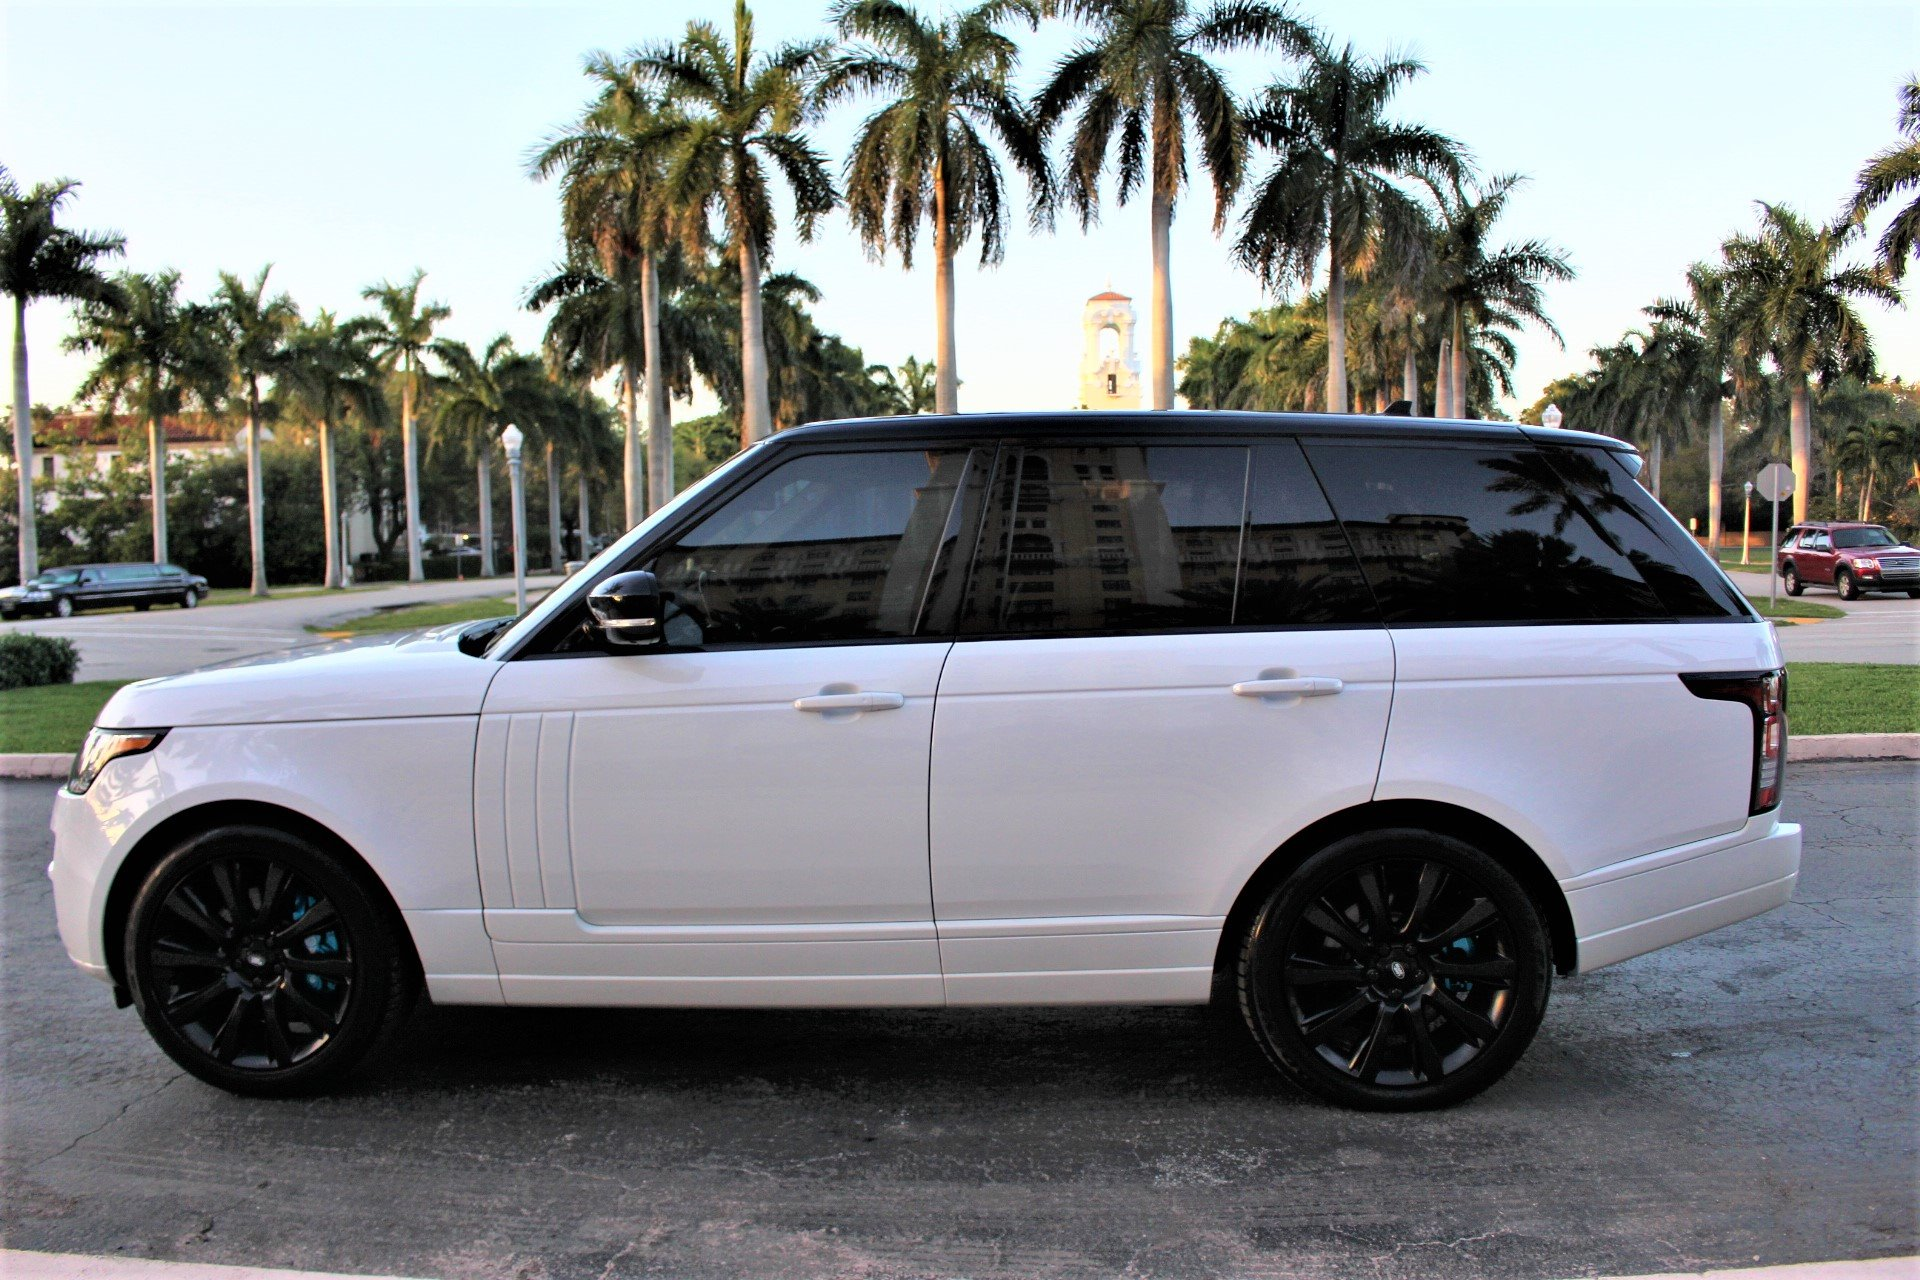 Used 2016 Land Rover Range Rover Supercharged for sale $53,850 at The Gables Sports Cars in Miami FL 33146 4